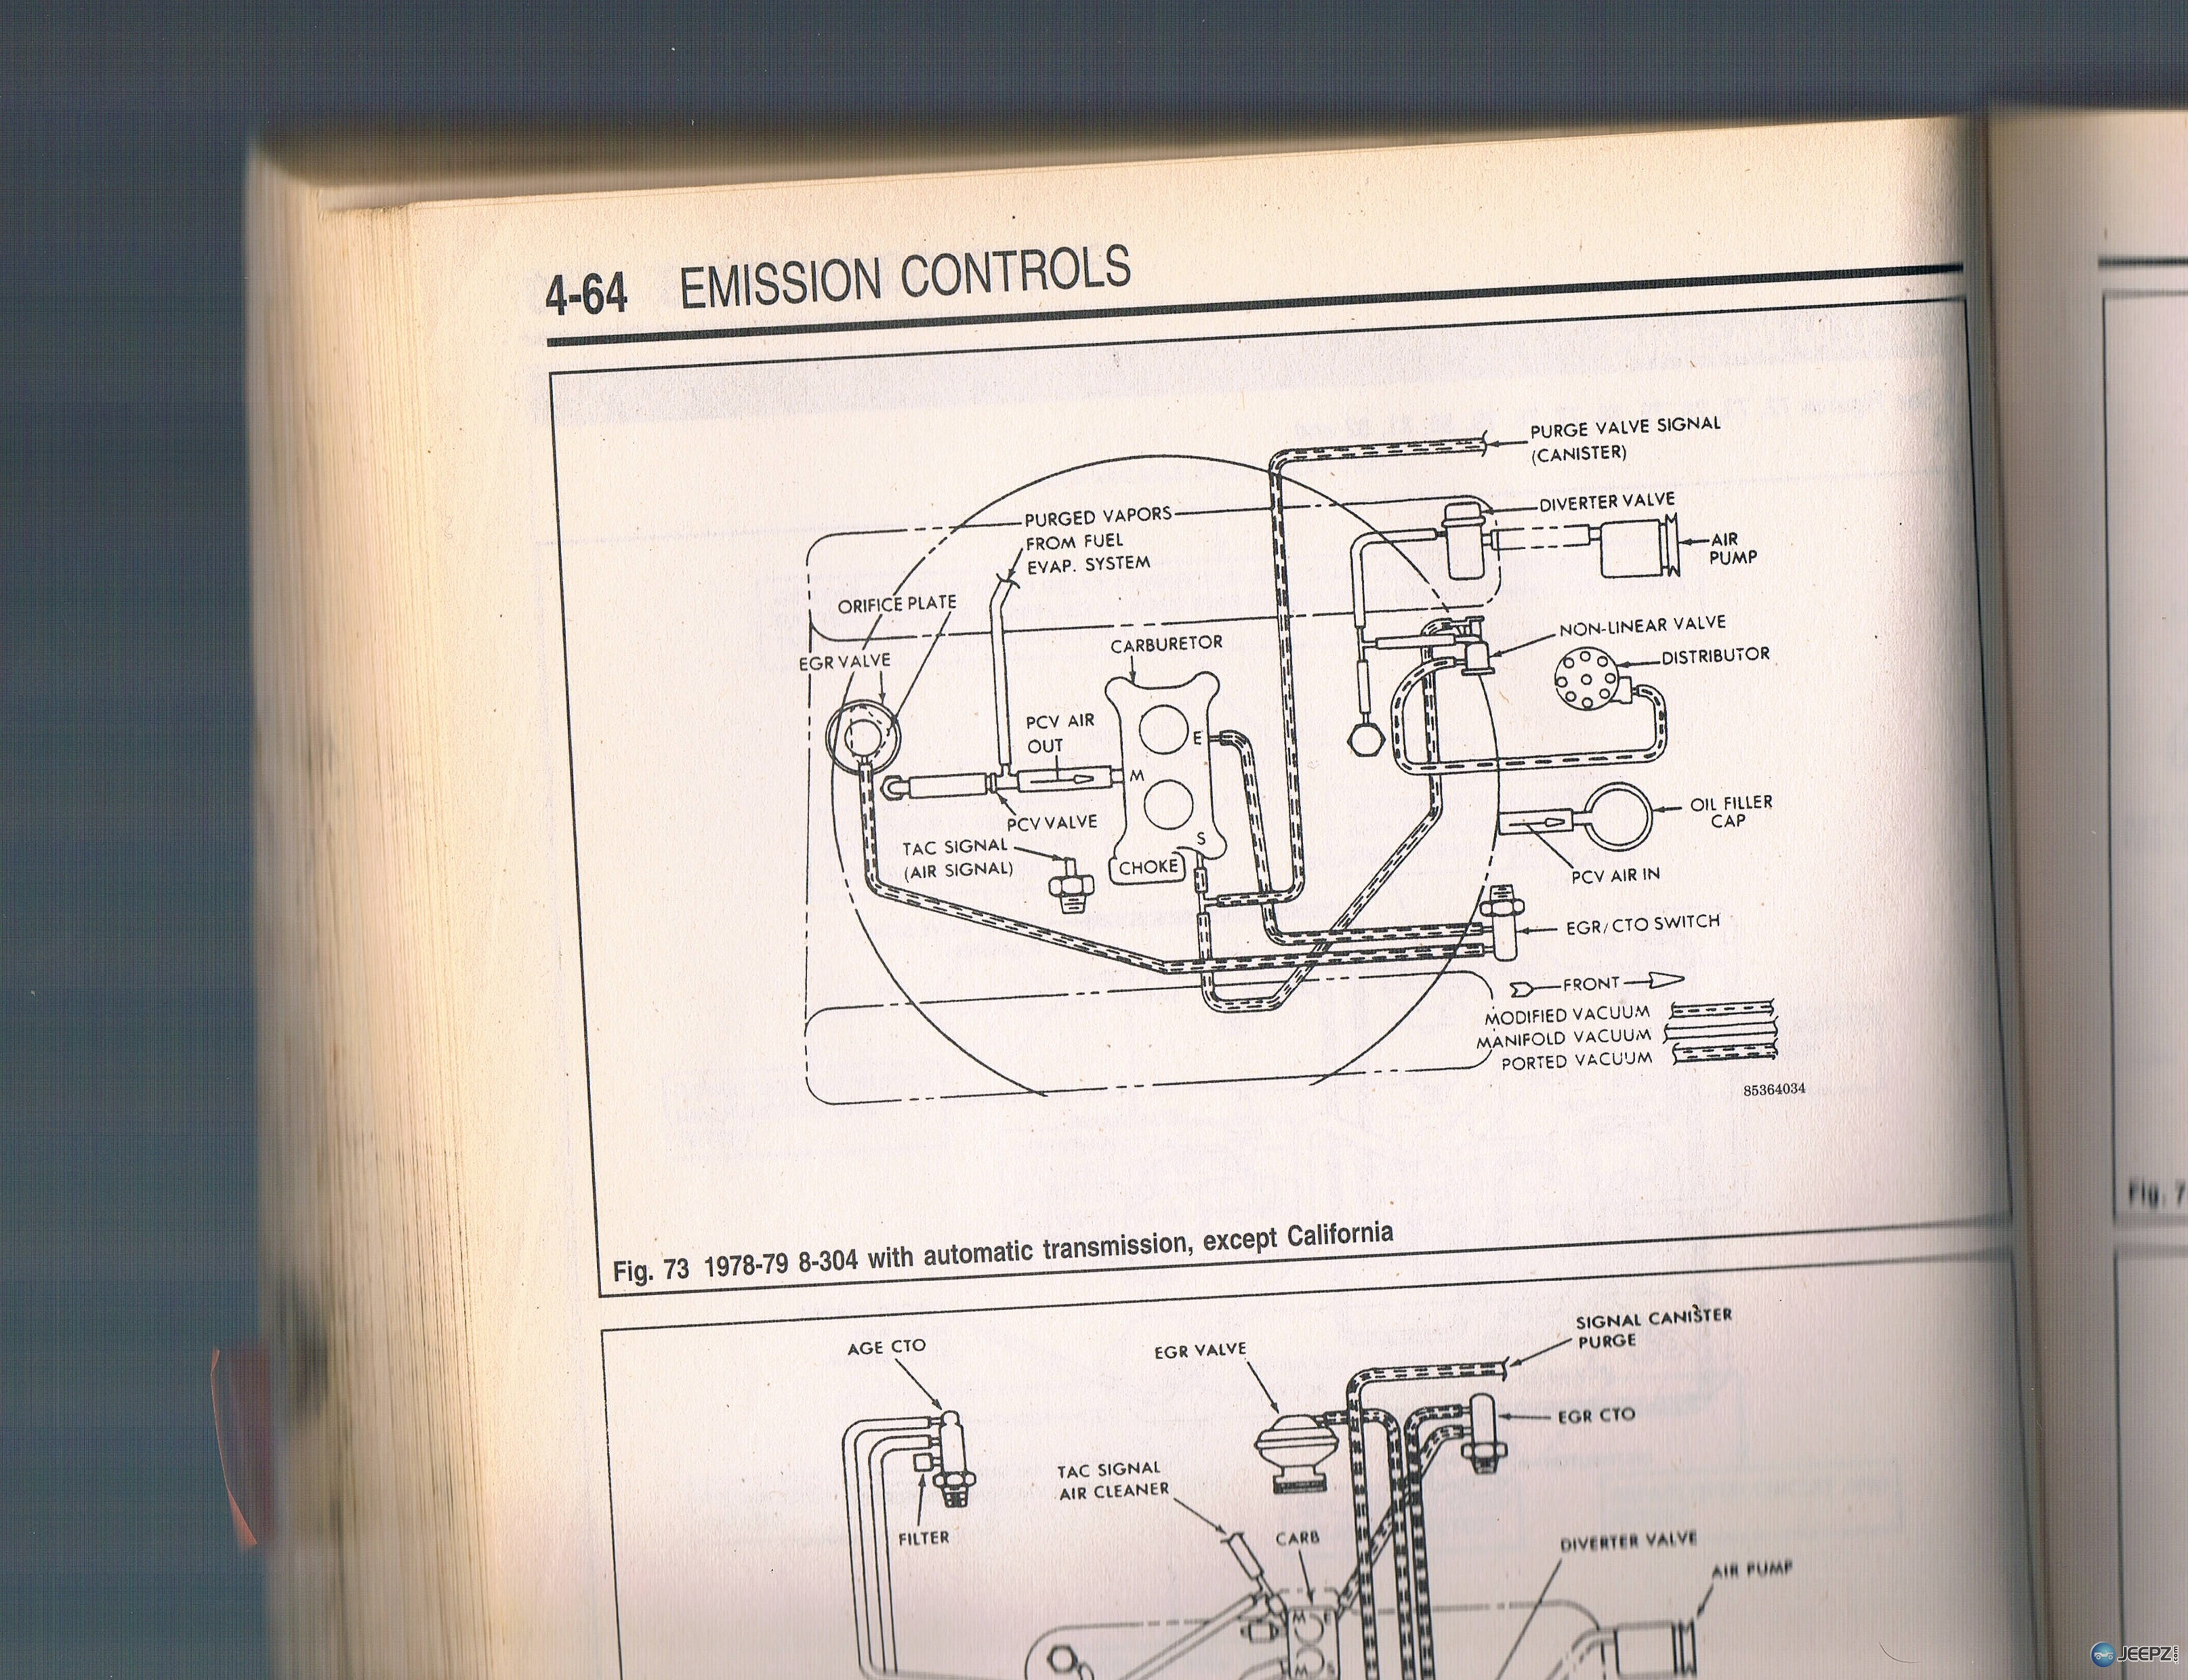 1979 jeep cj5 wiring diagram images 1973 jeep cj7 wiring diagram on 1979 jeep cj7 fuel line diagram